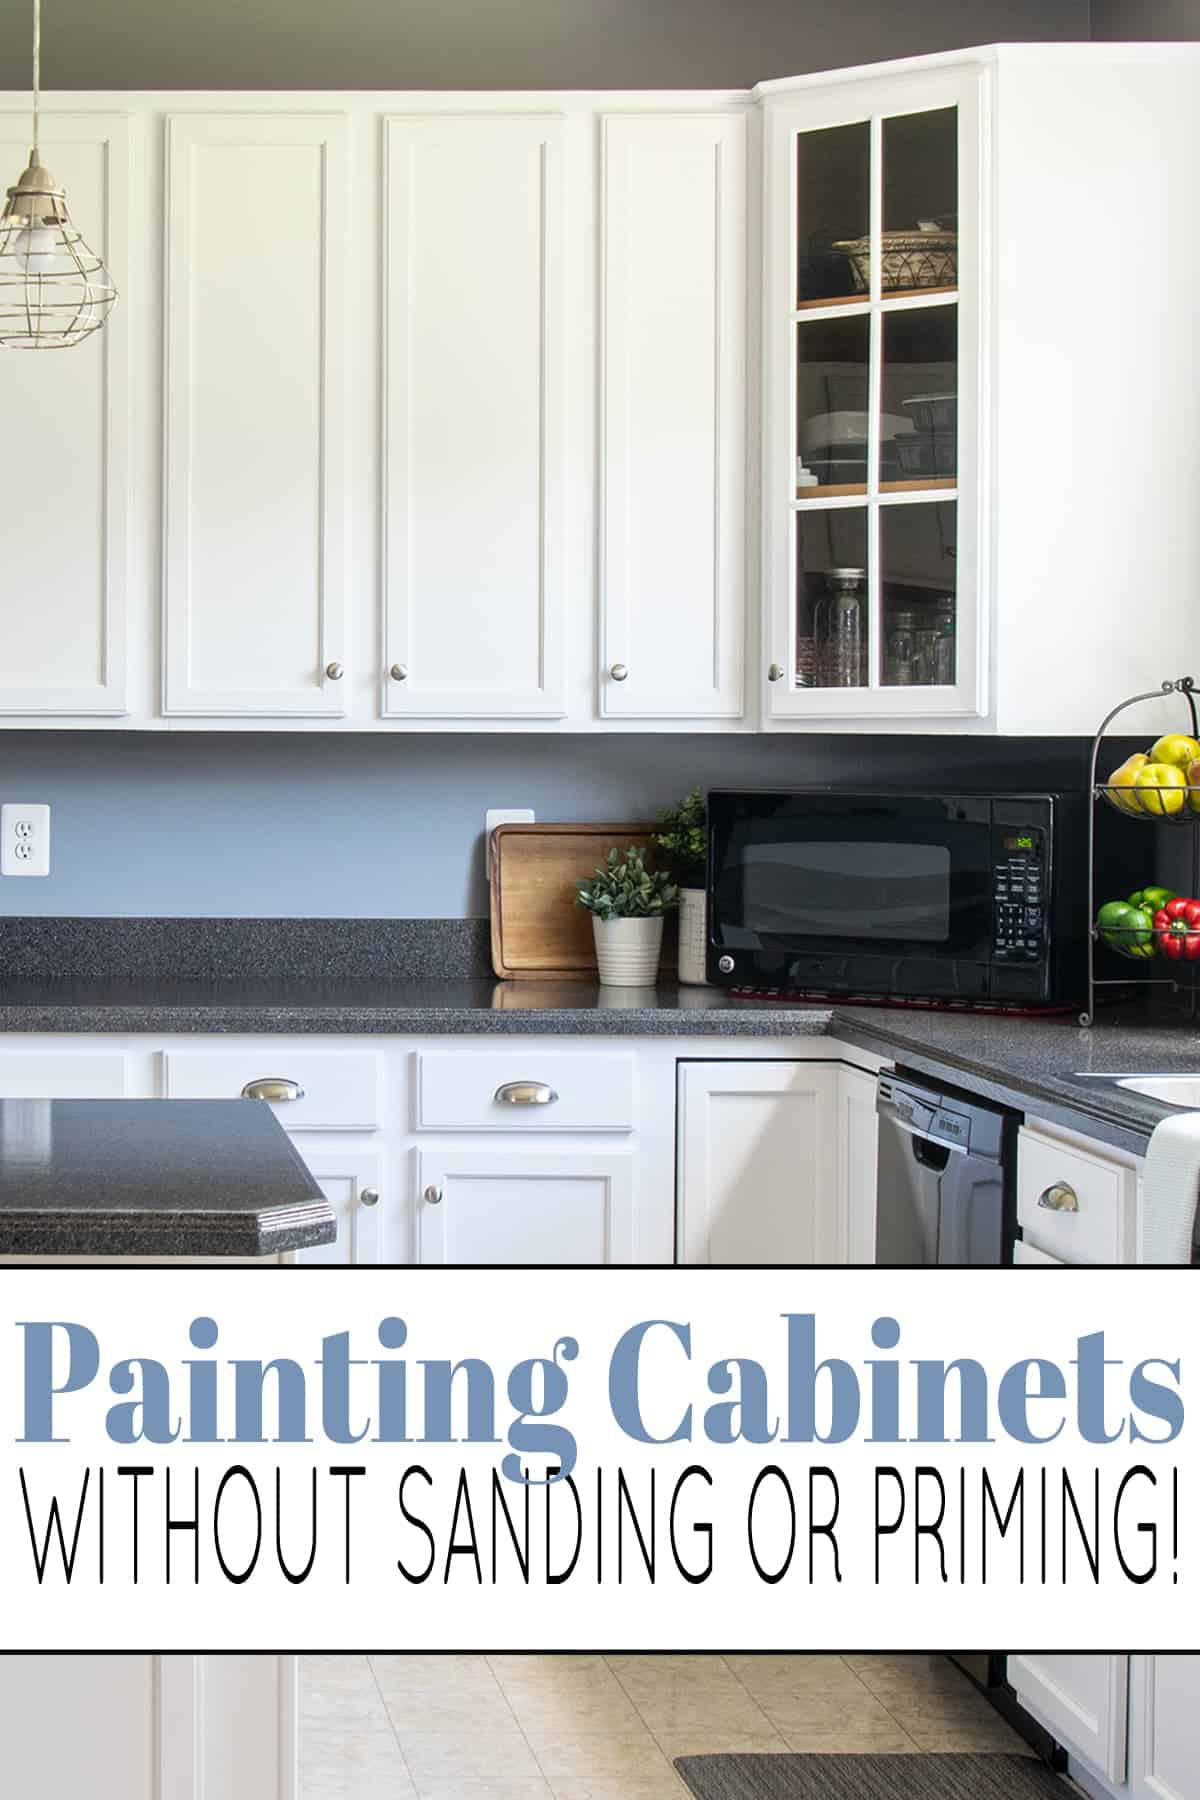 Traditional kitchen with white painted kitchen cabinet with glass door corner cabinet, dark gray countertops, with black microwave, fruit stand, and potted plants.